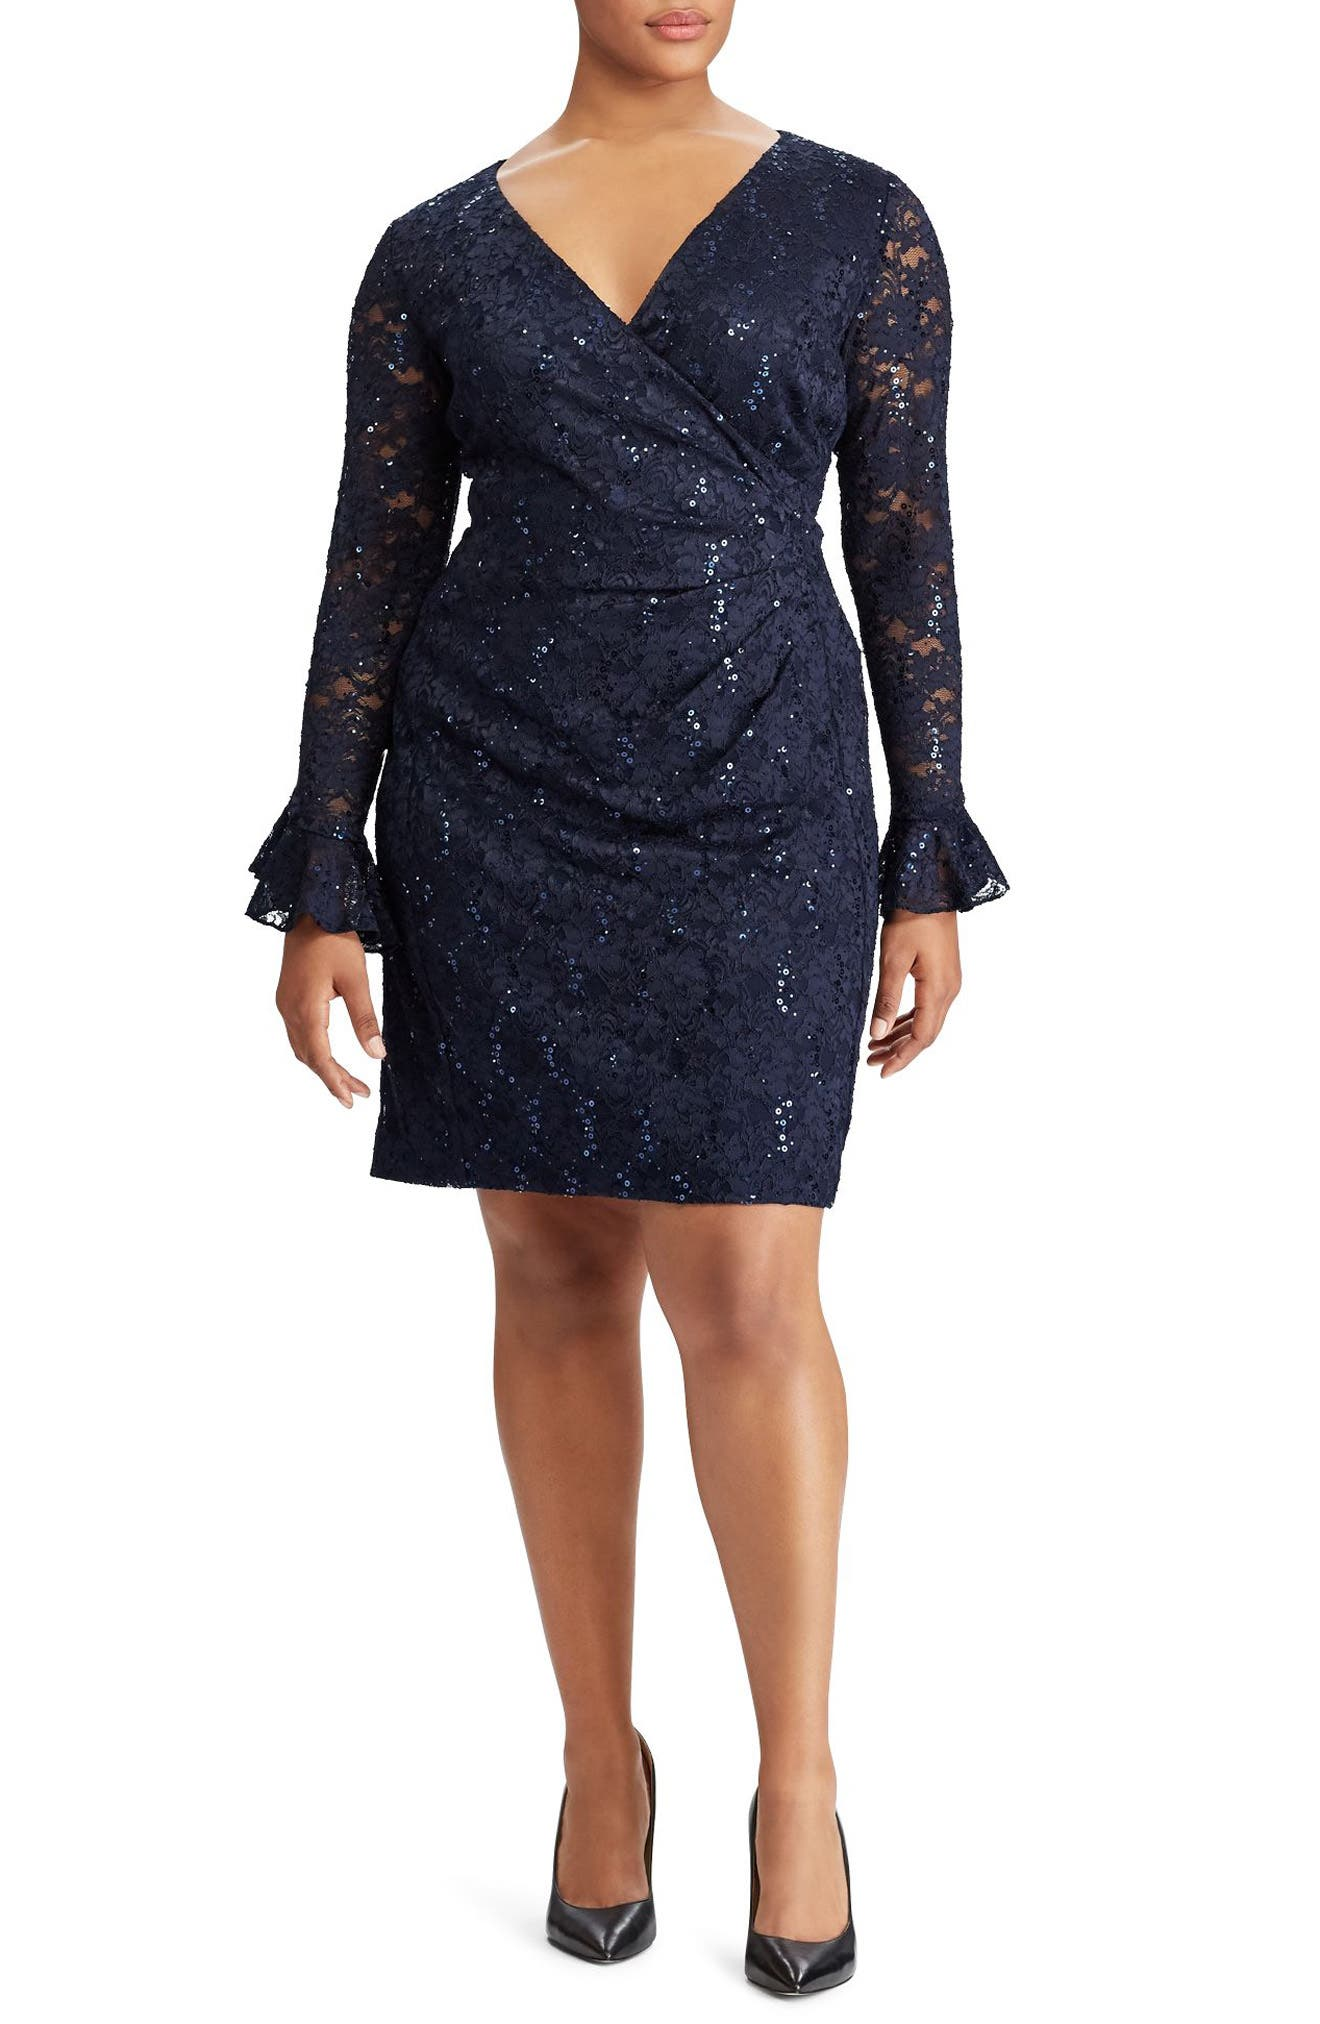 Lauren Ralph Lauren Agnes Lace & Sequin Dress (Plus Size)